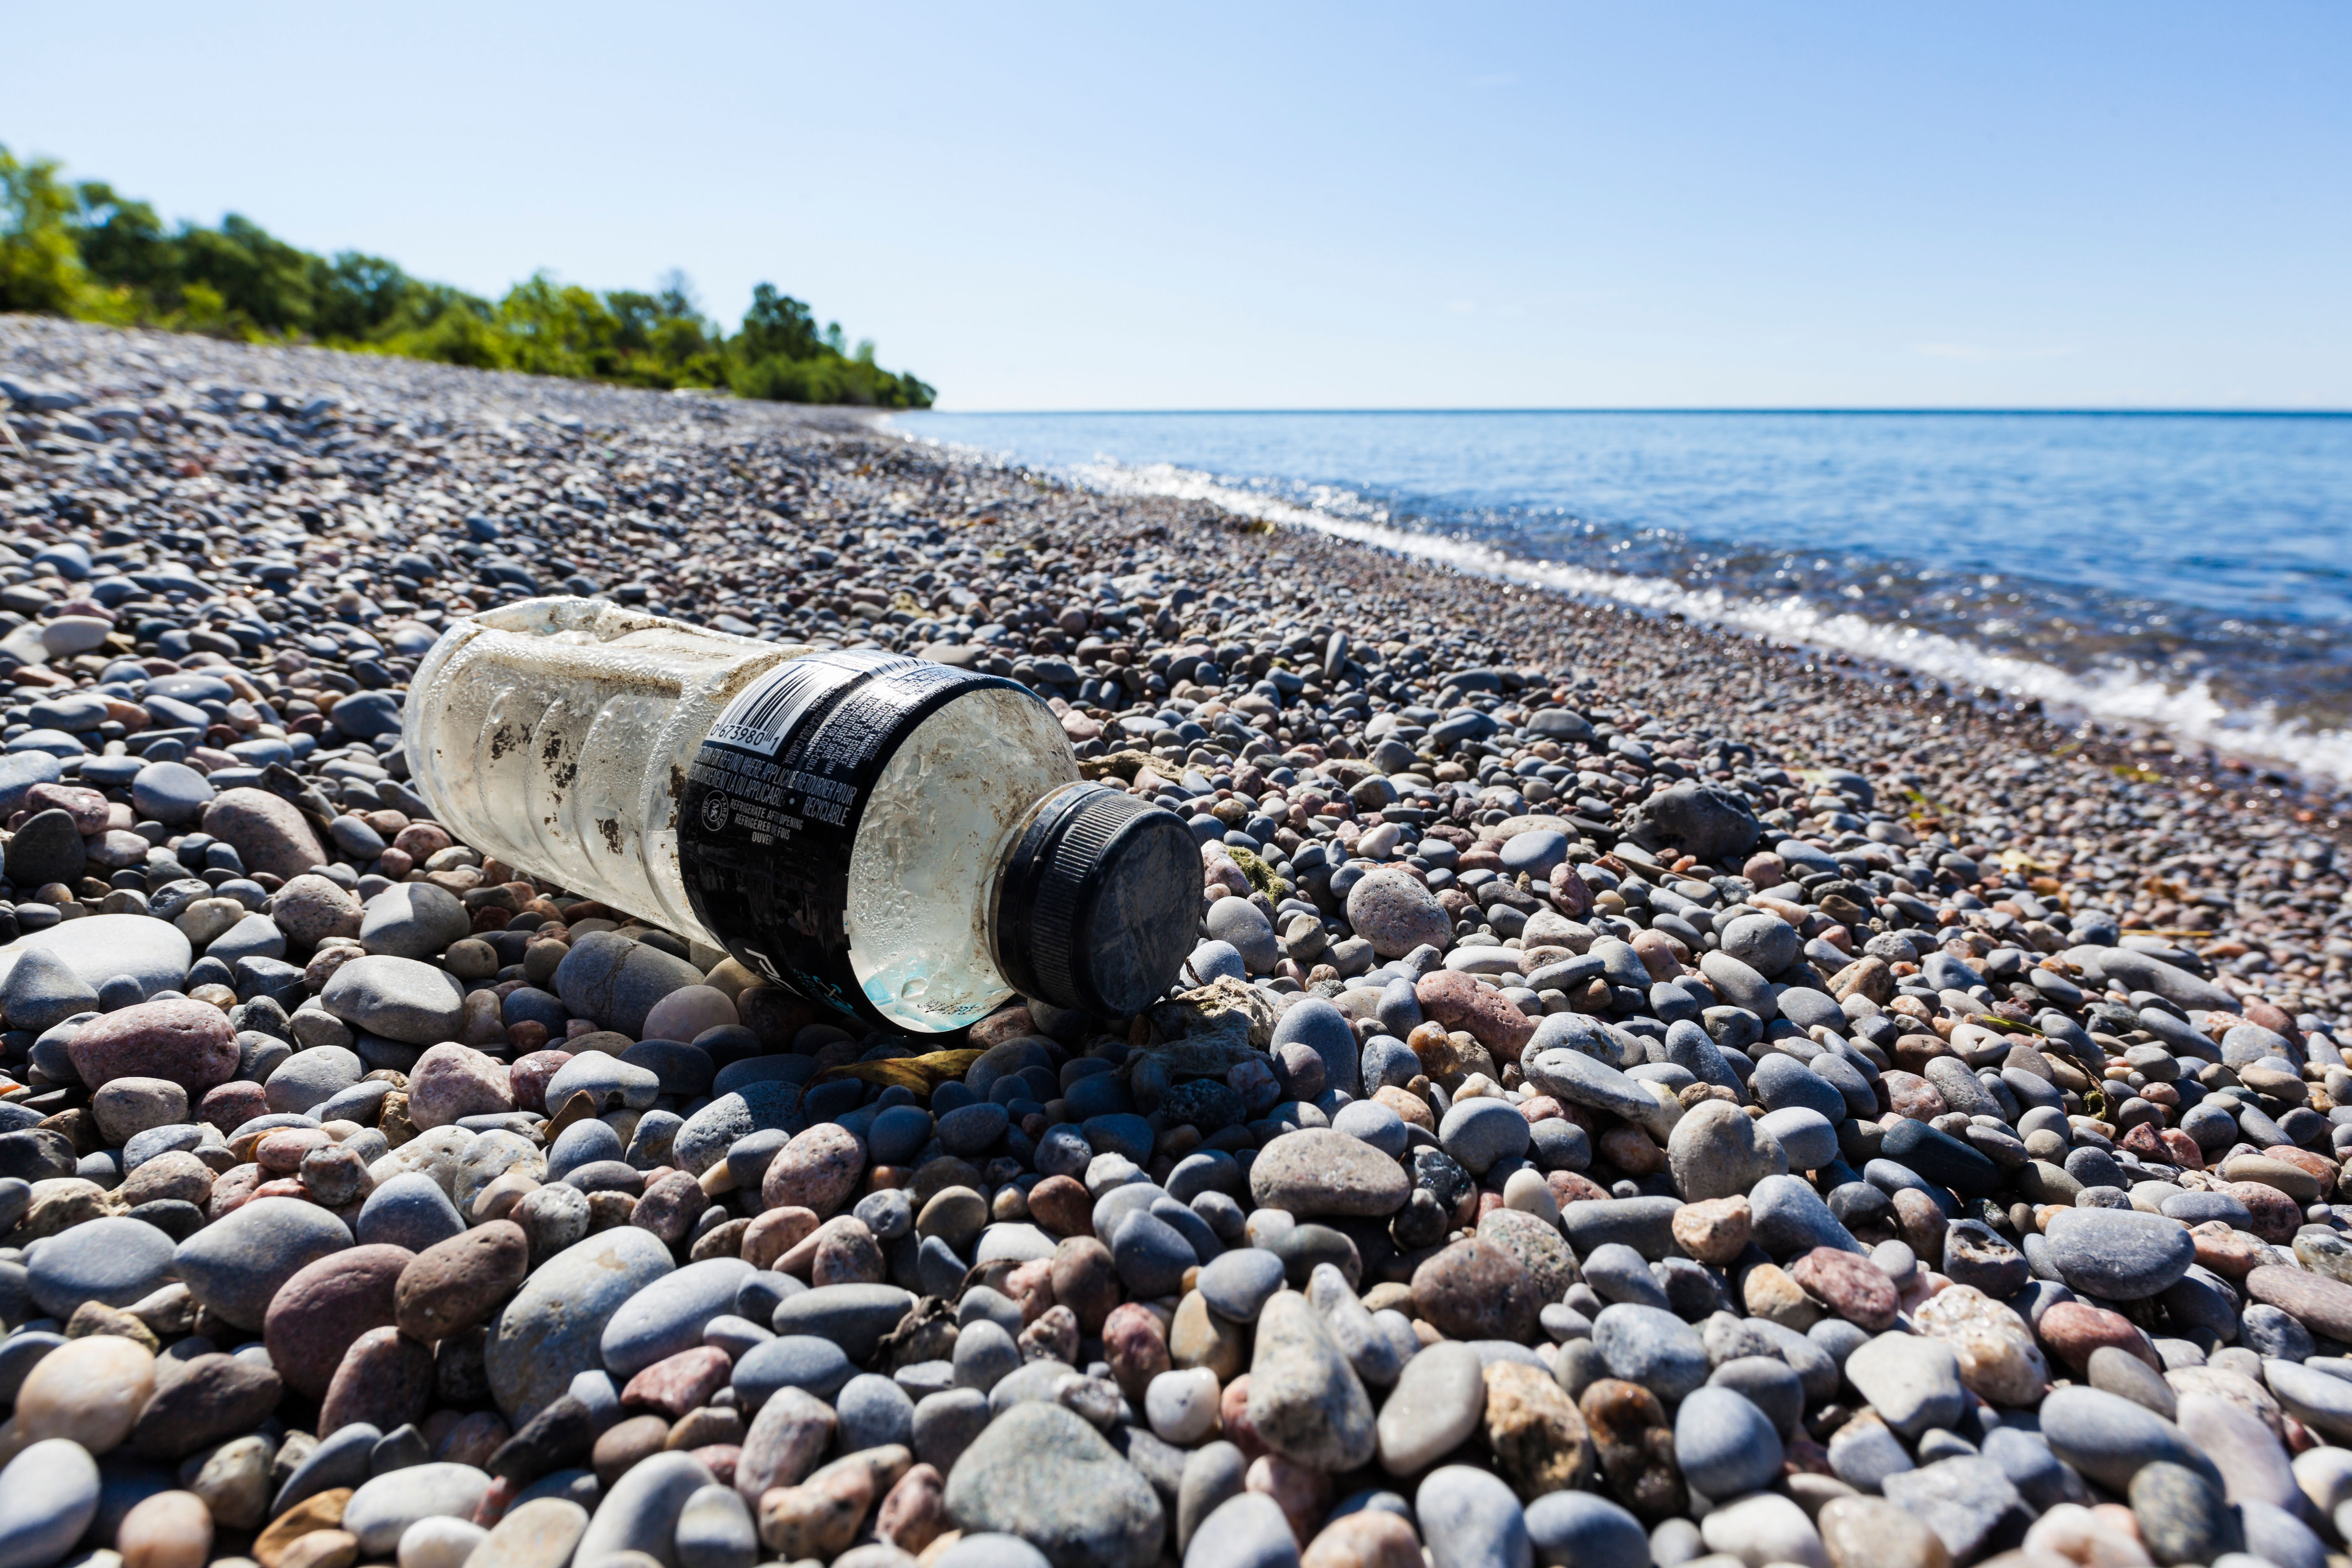 CRX8RT Plastic bottle litter on a Lake Ontario otherwise pristine beach near Second Marsh Wildlife Area in Oshawa Ontario Canada.